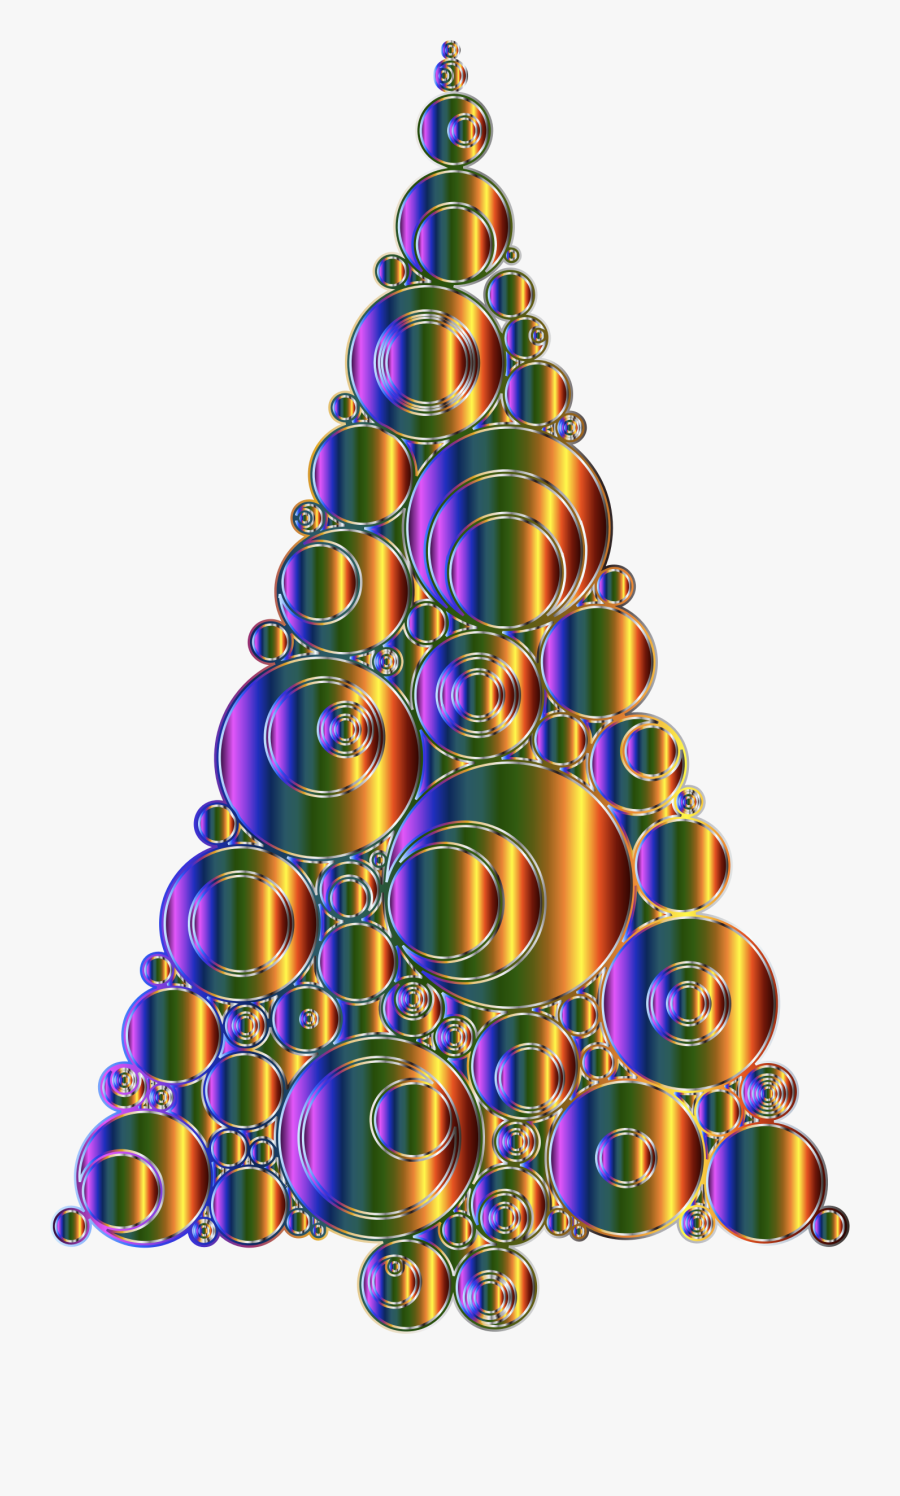 Xmas Tree Png - Christmas Tree, Transparent Clipart